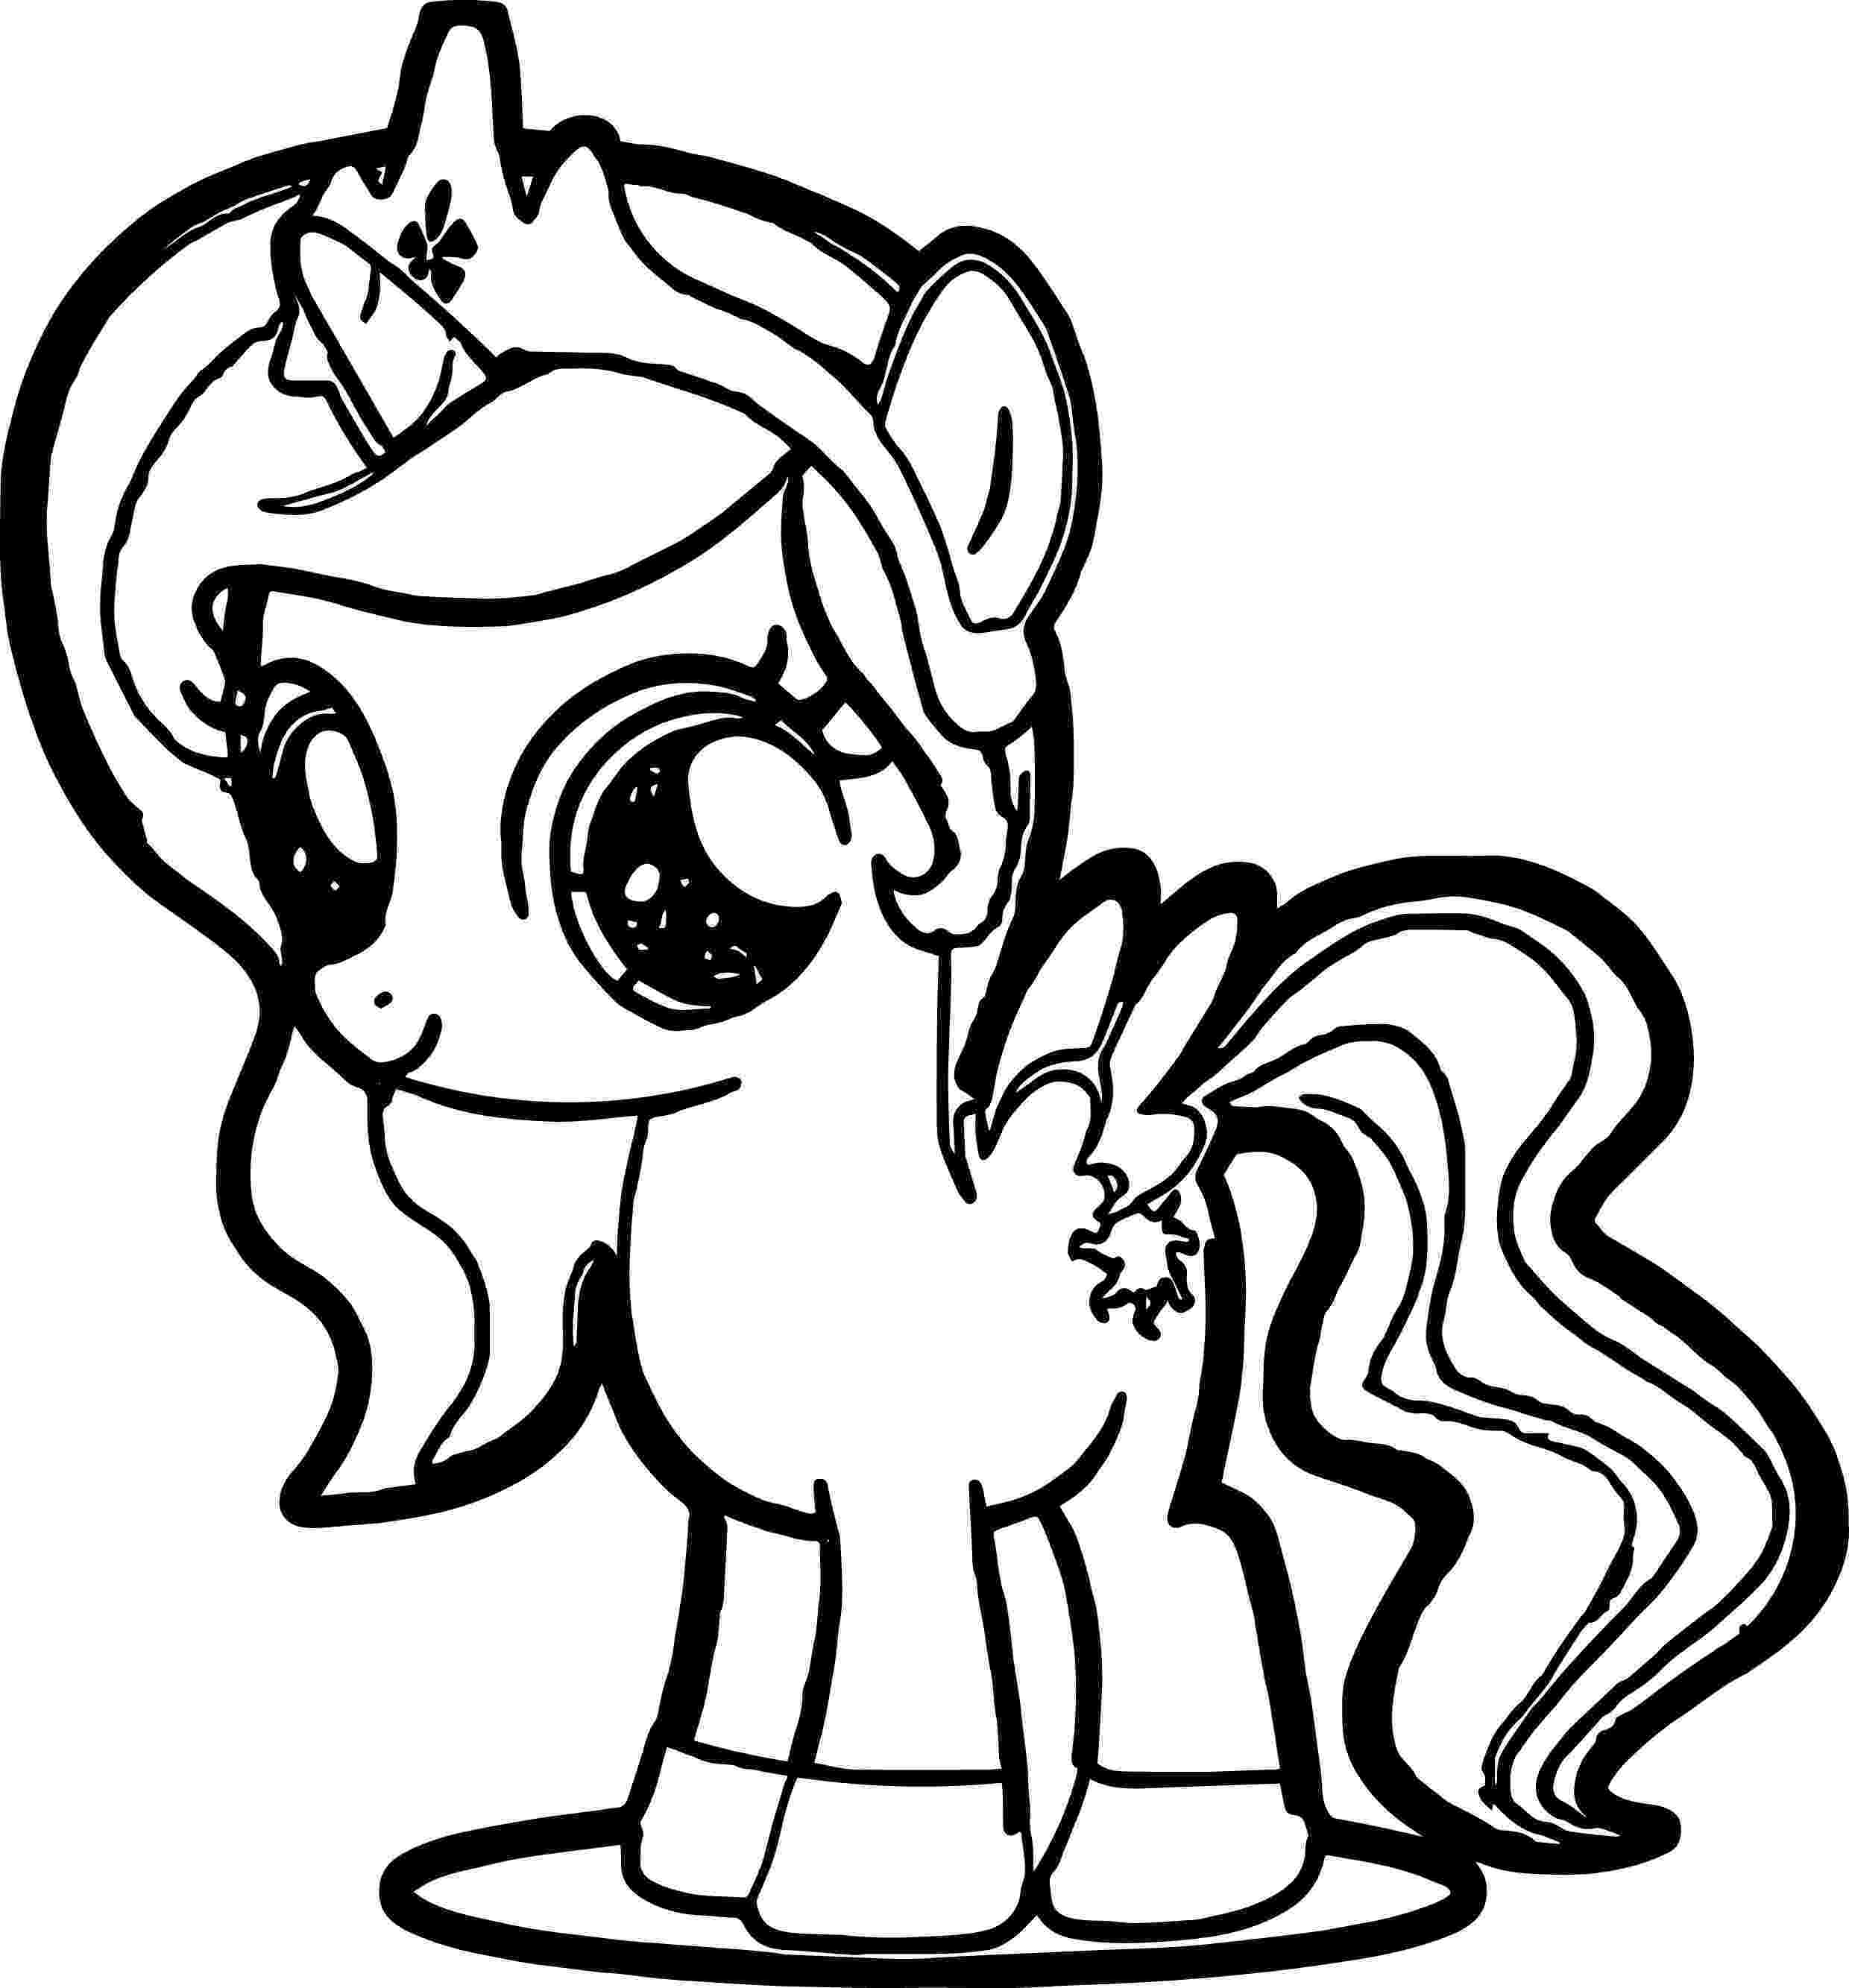 little pony to color cute pony coloring page wecoloringpagecom little color pony to